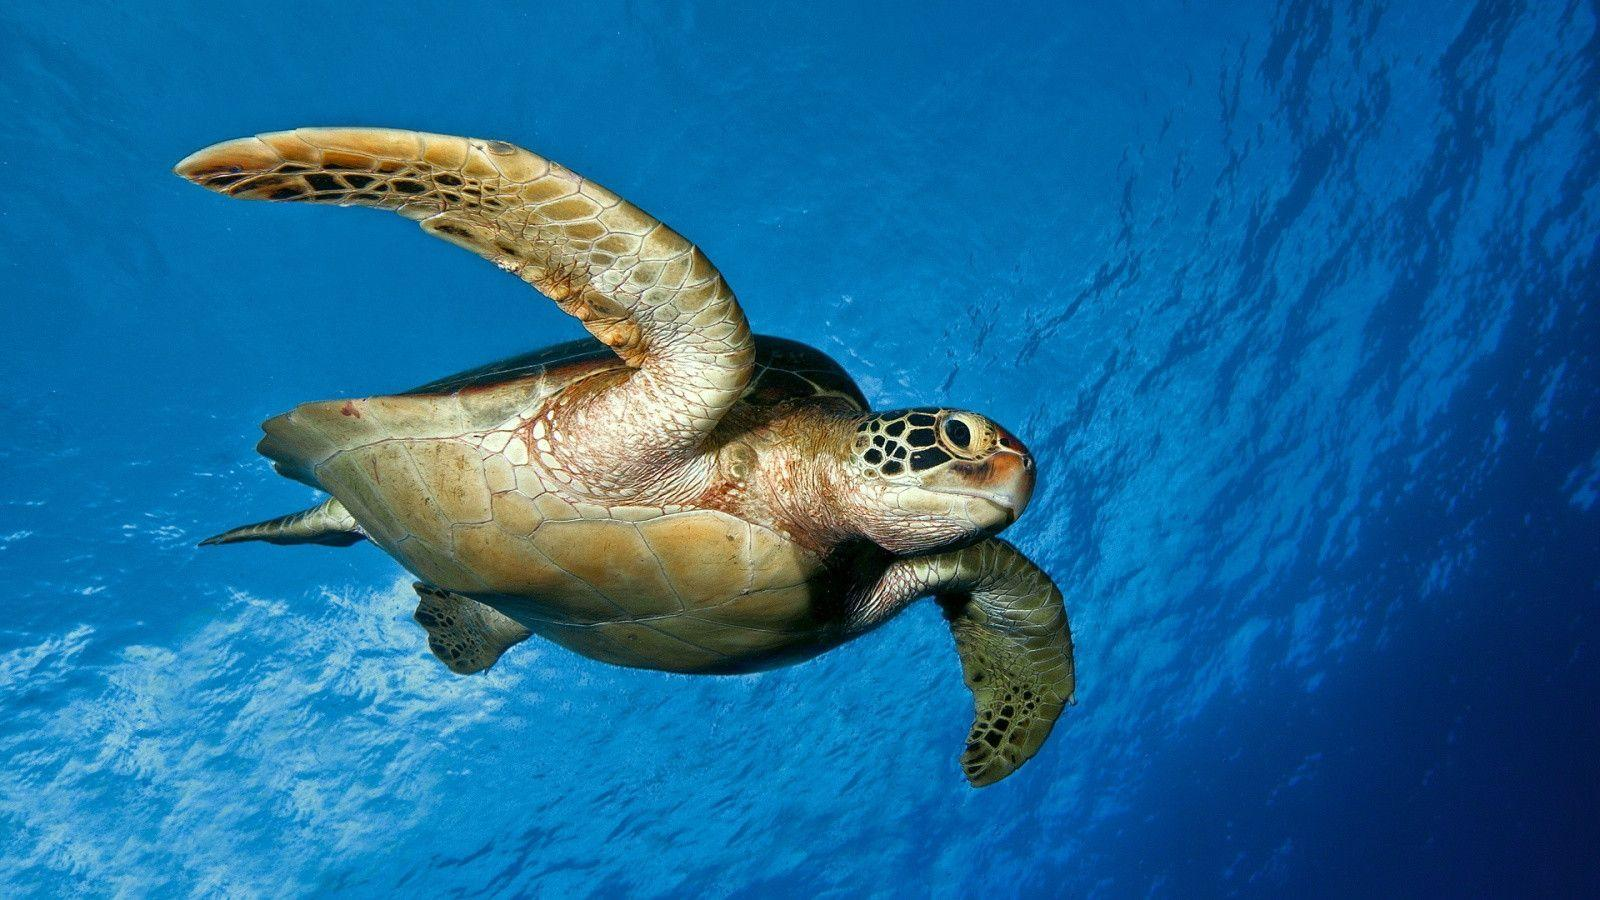 1600x900 Turtle backgrounds Wallpapers